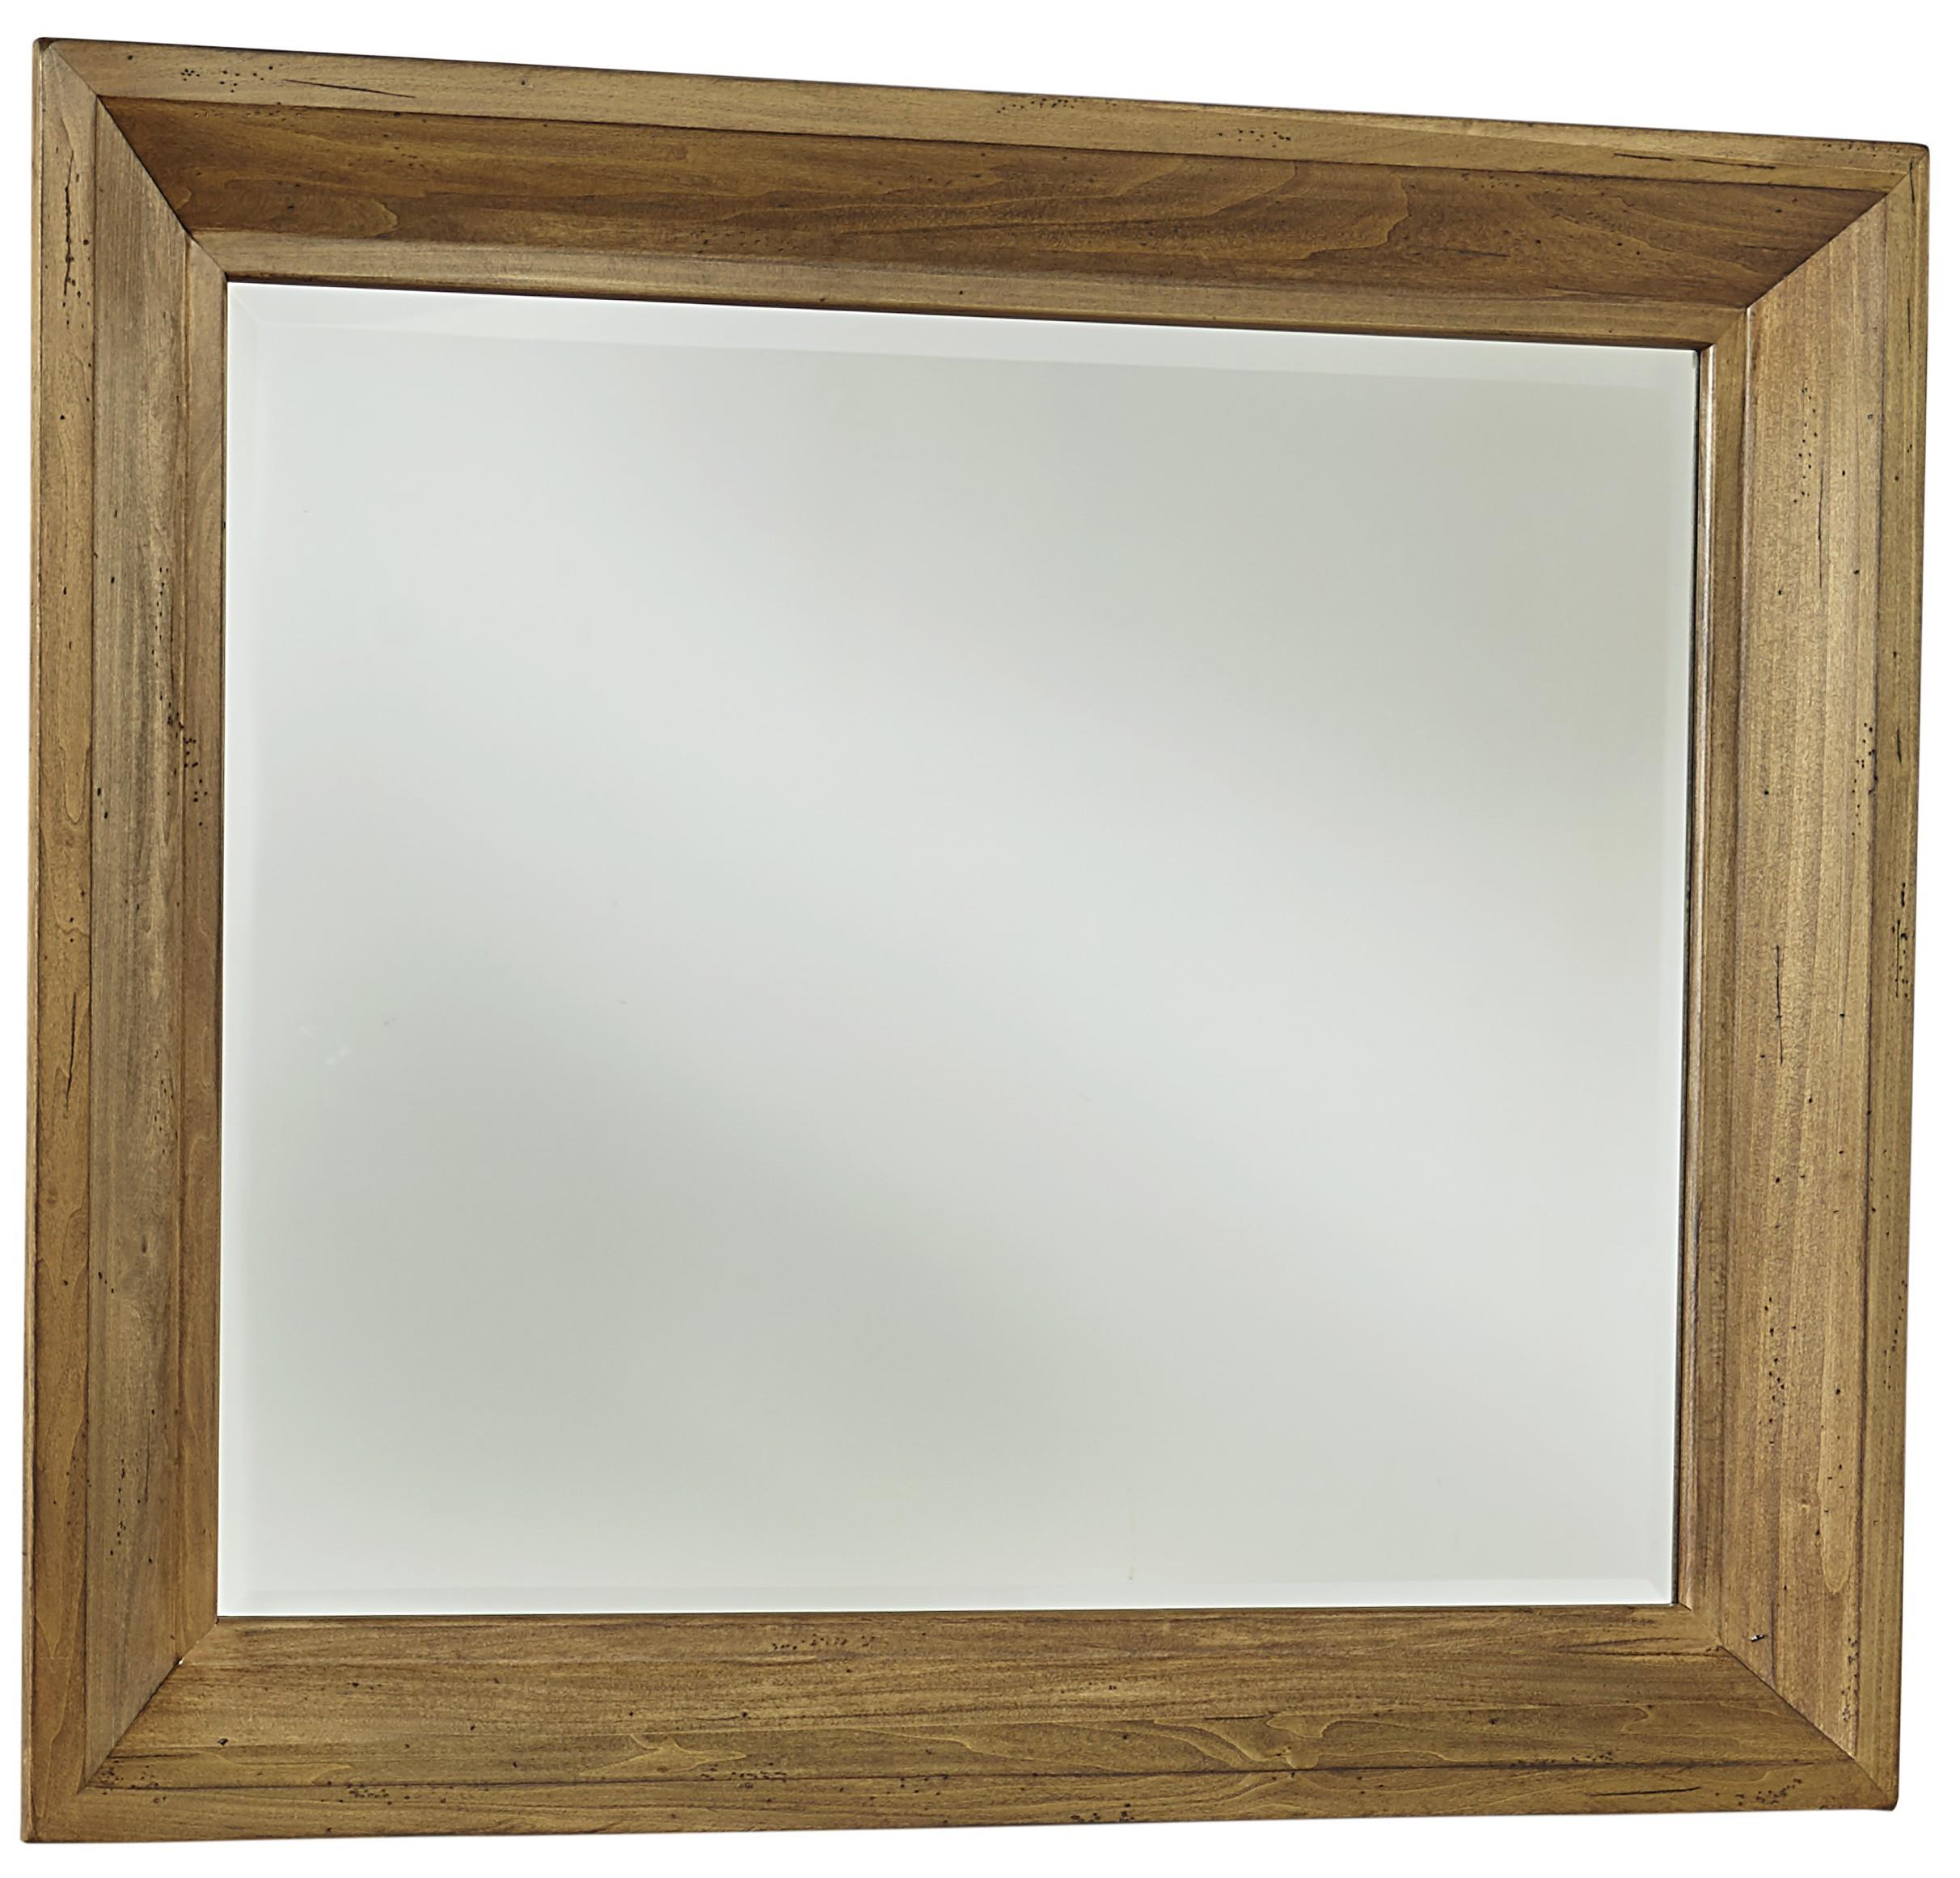 Vaughan Bassett Collaboration Landscape Mirror - Item Number: 614-446